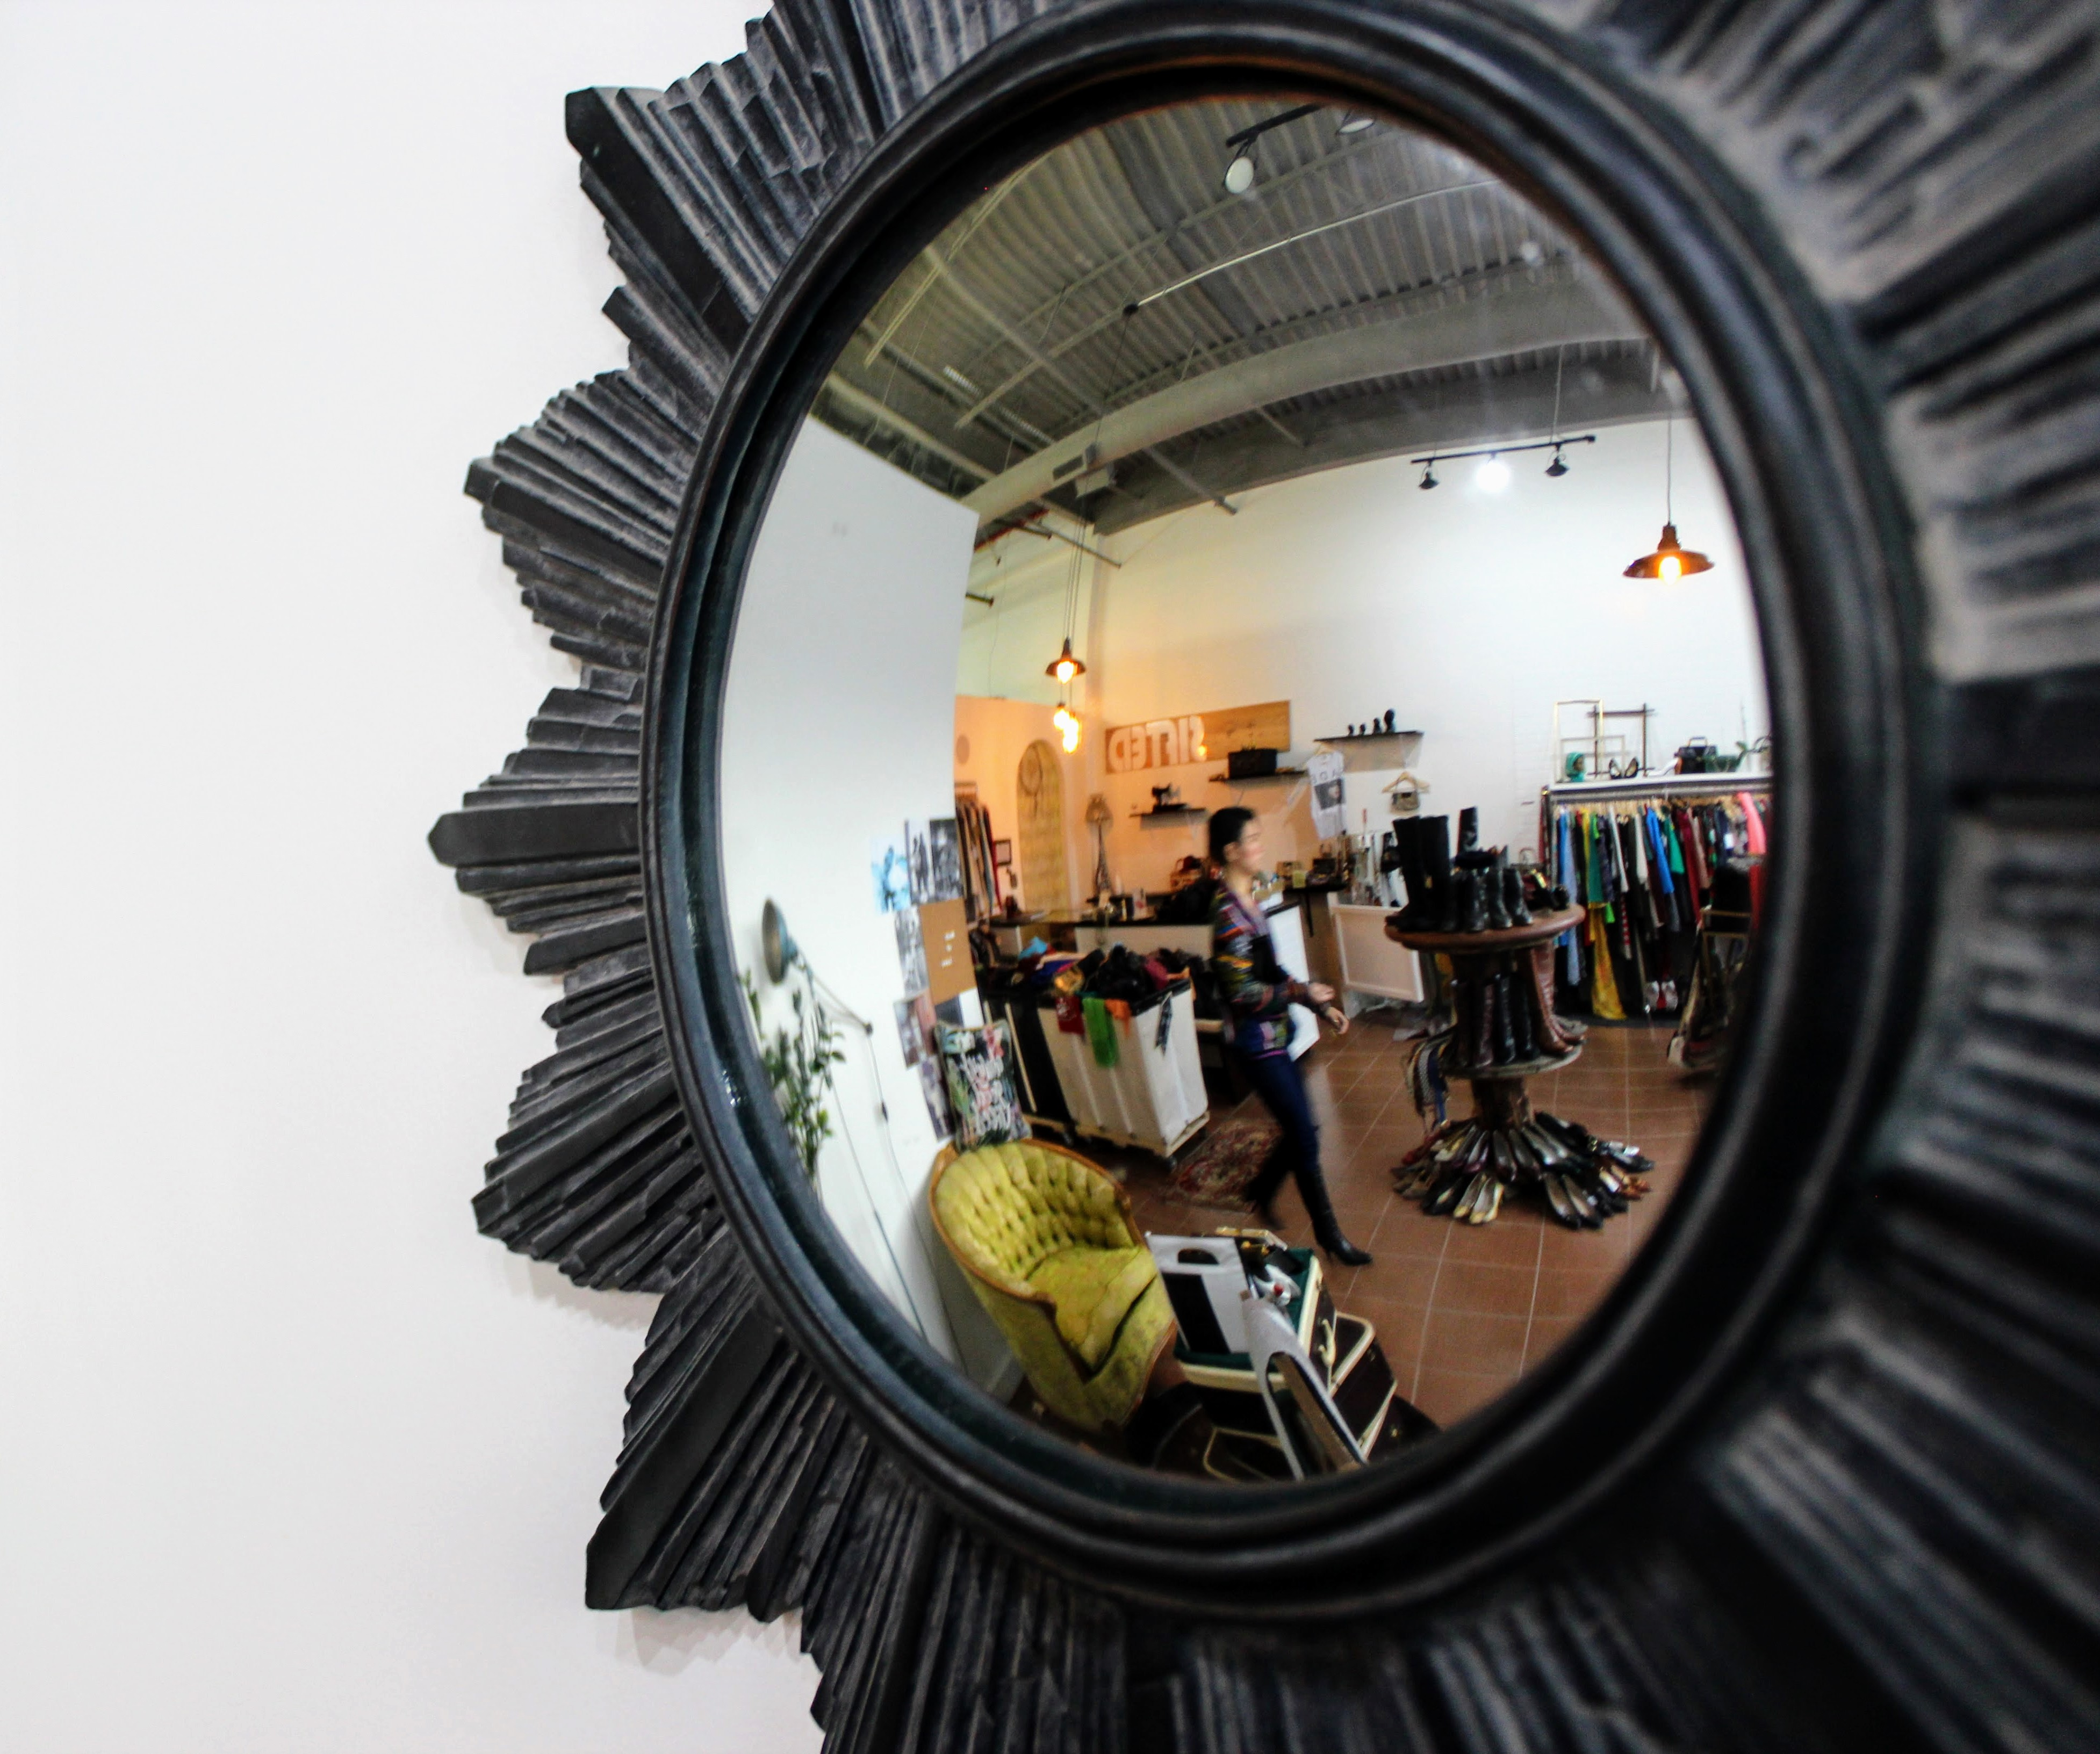 Vintage Sifted store in Toronto